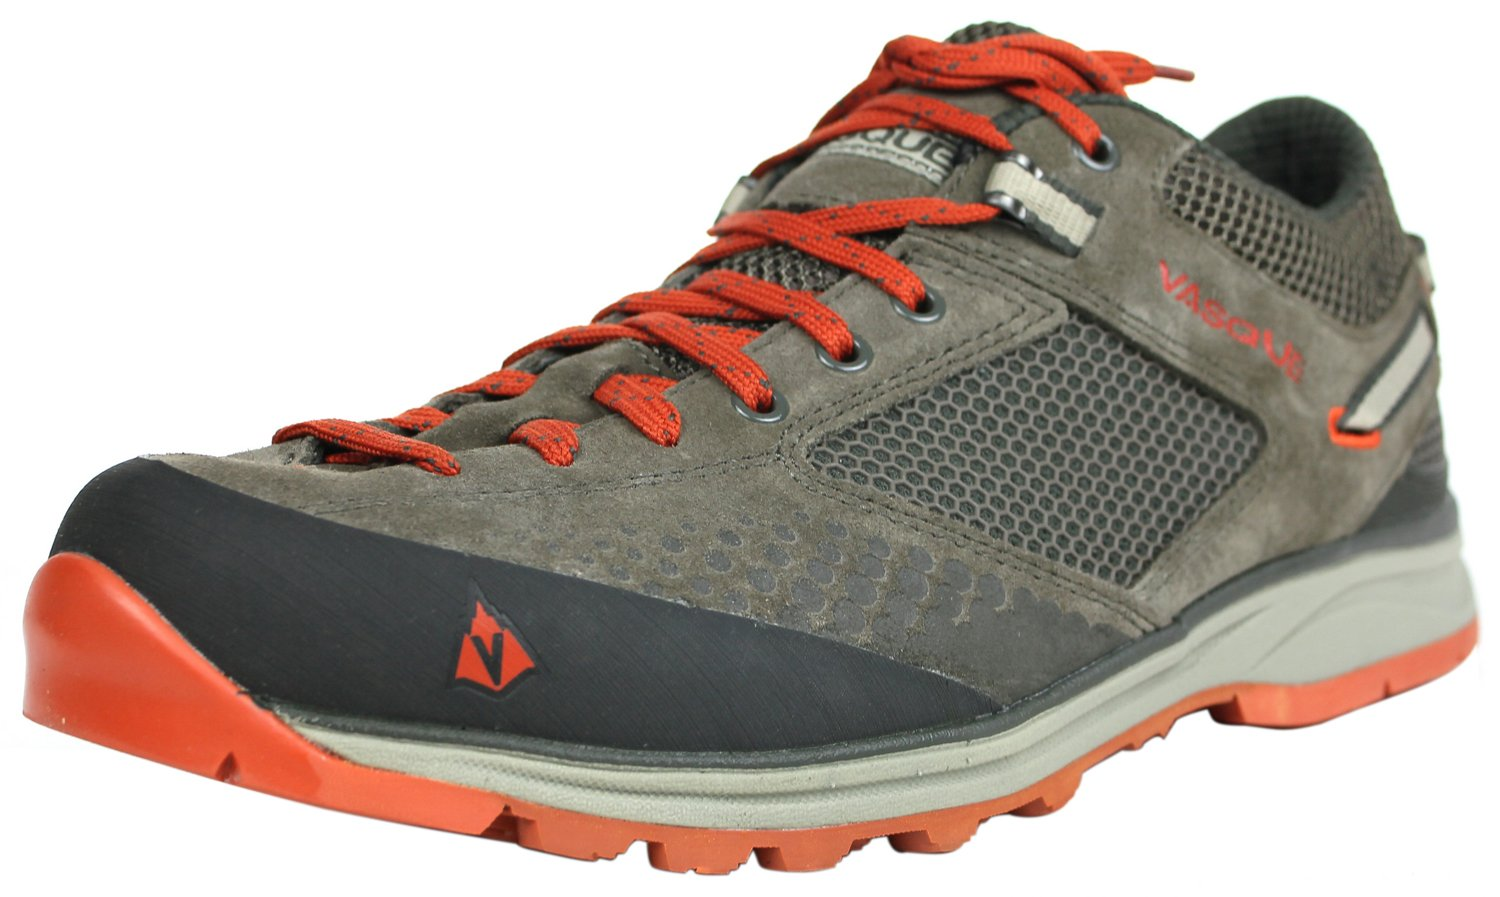 Vasque Men's Grand Traverse Performance Hiking Shoe,Bungee Cord/Rooibos Tea,11 M US